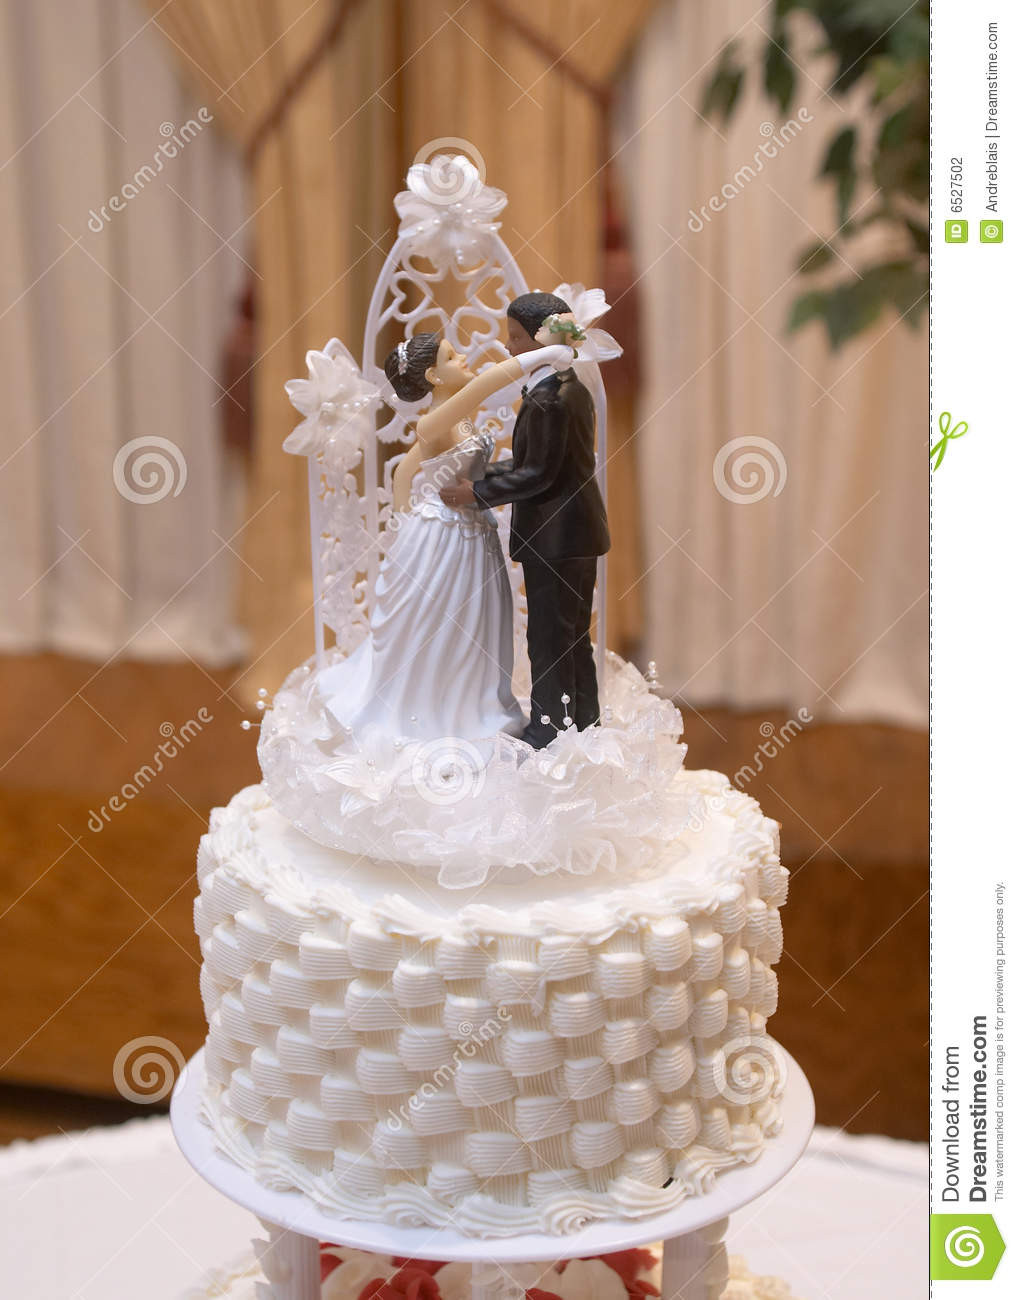 Tops Of Wedding Cakes  Wedding Cake Top stock photo Image of black luxury